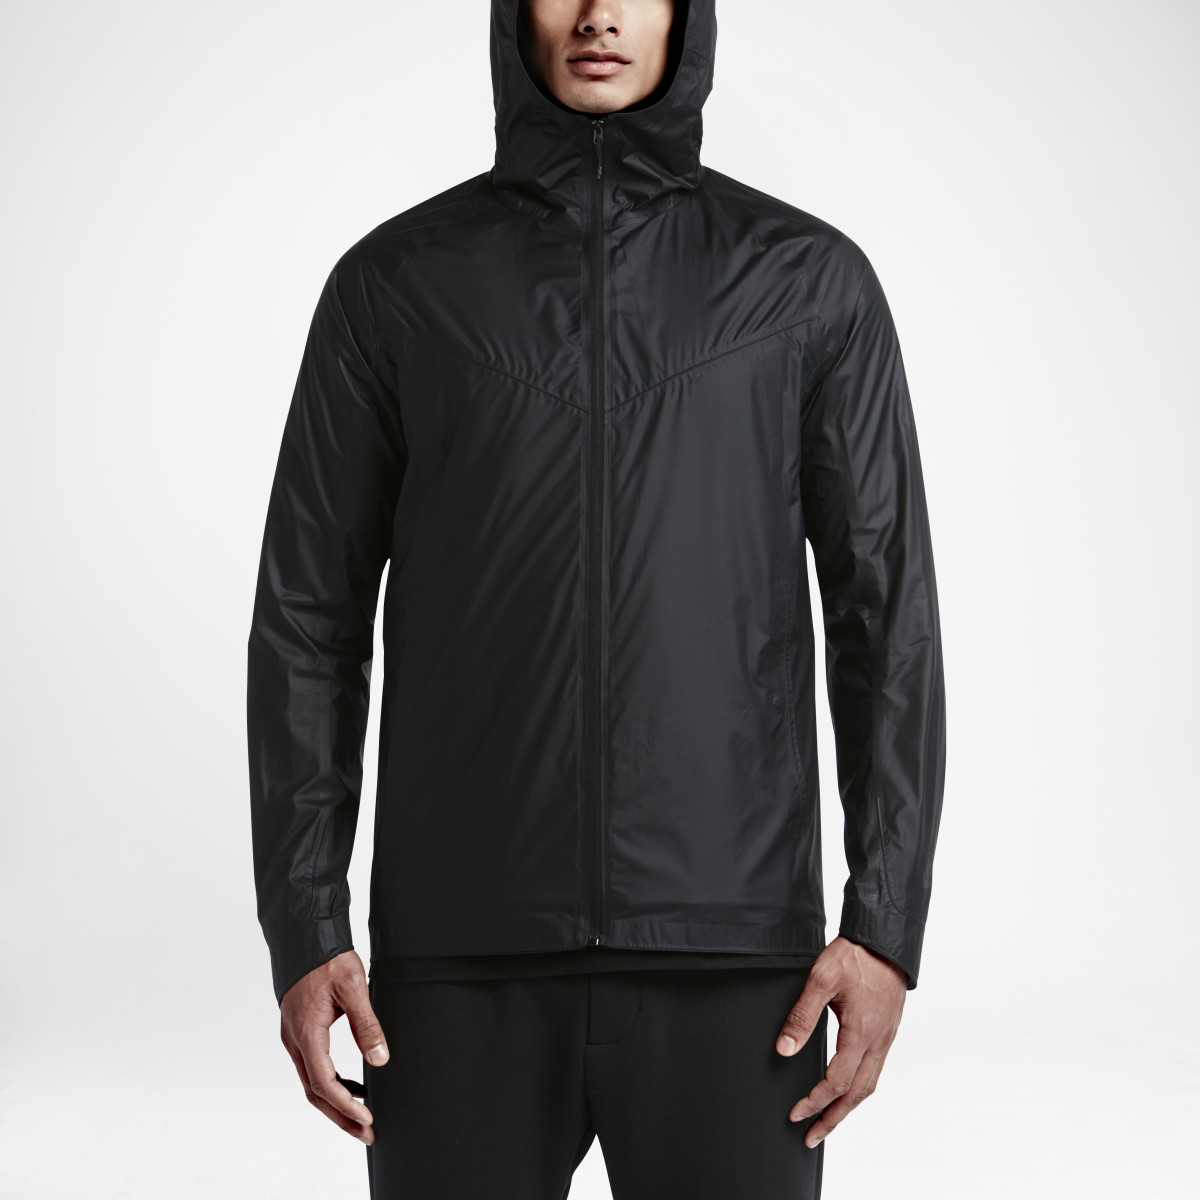 nikelab-transform-jacket-02.png